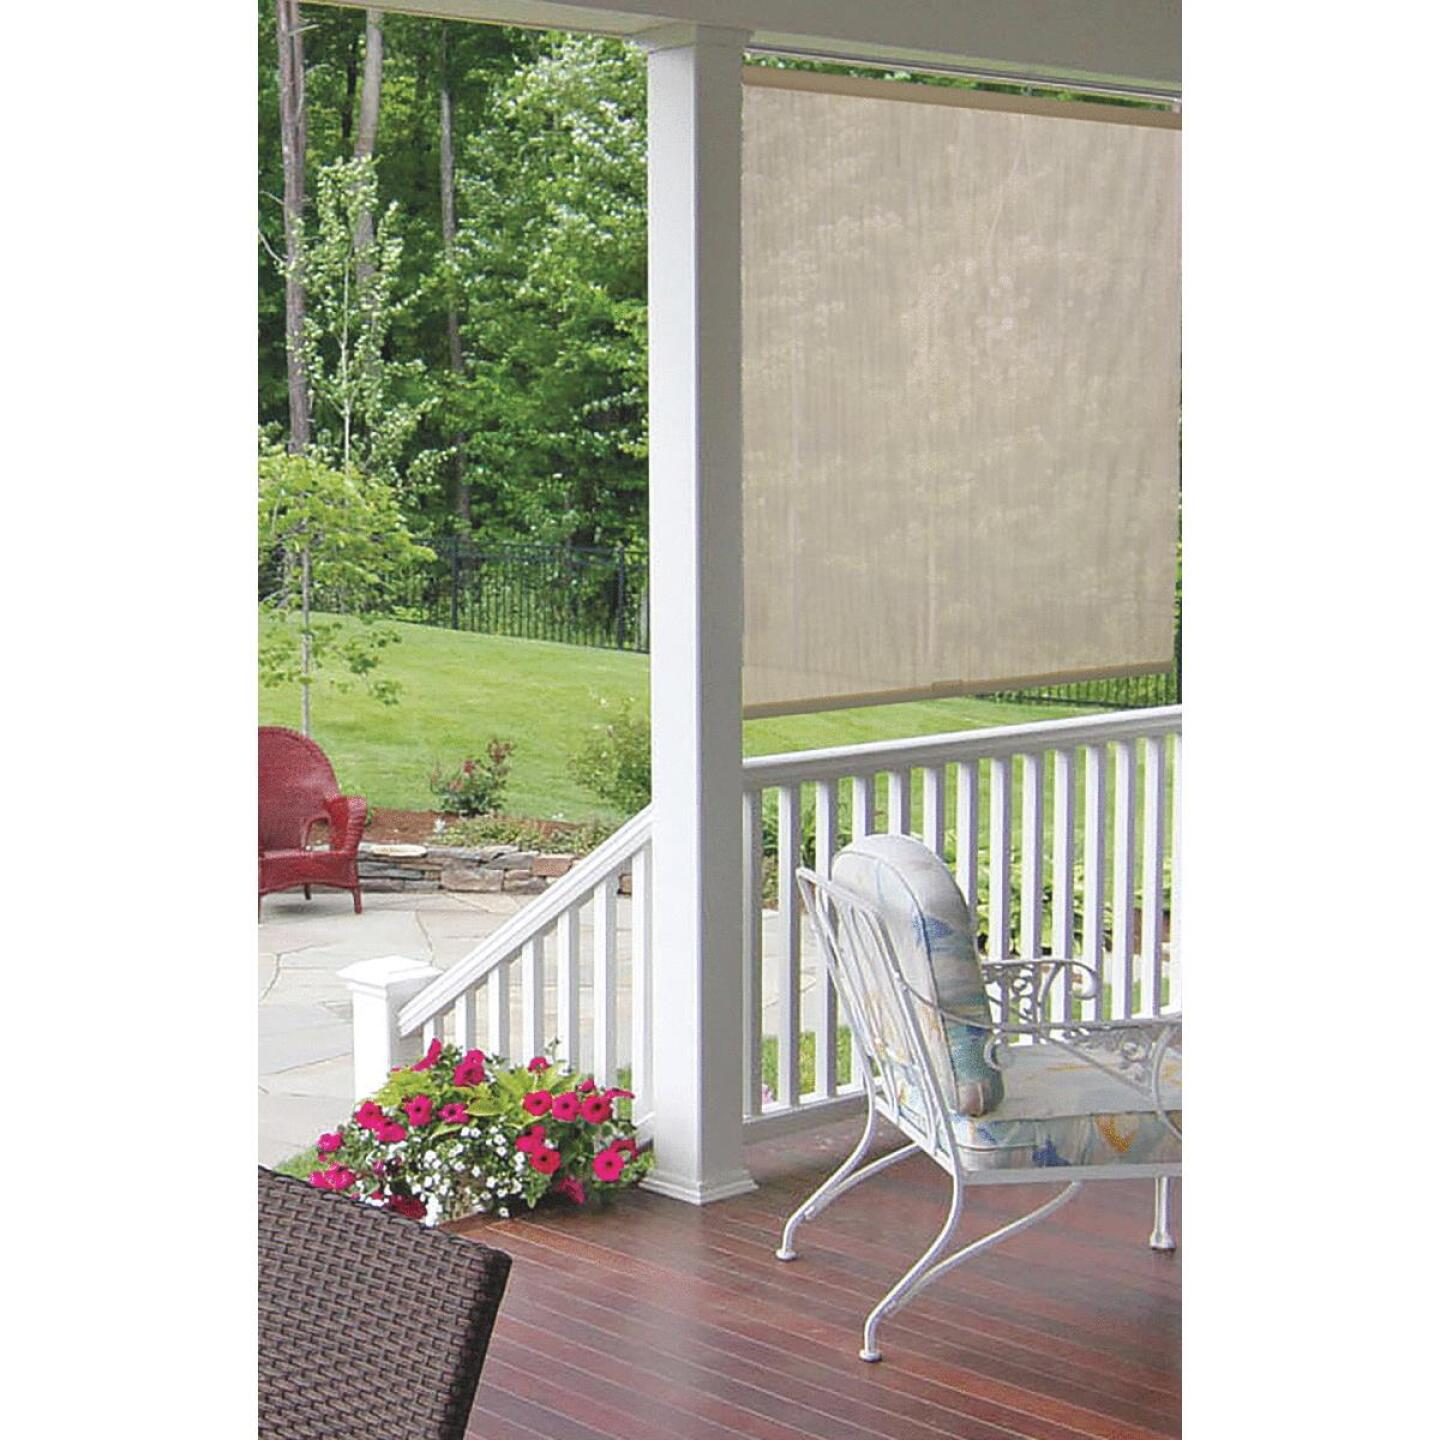 Home Impressions 72 In. x 72 In. Ivory Fabric Indoor/Outdoor Cordless Roller Shade Image 2